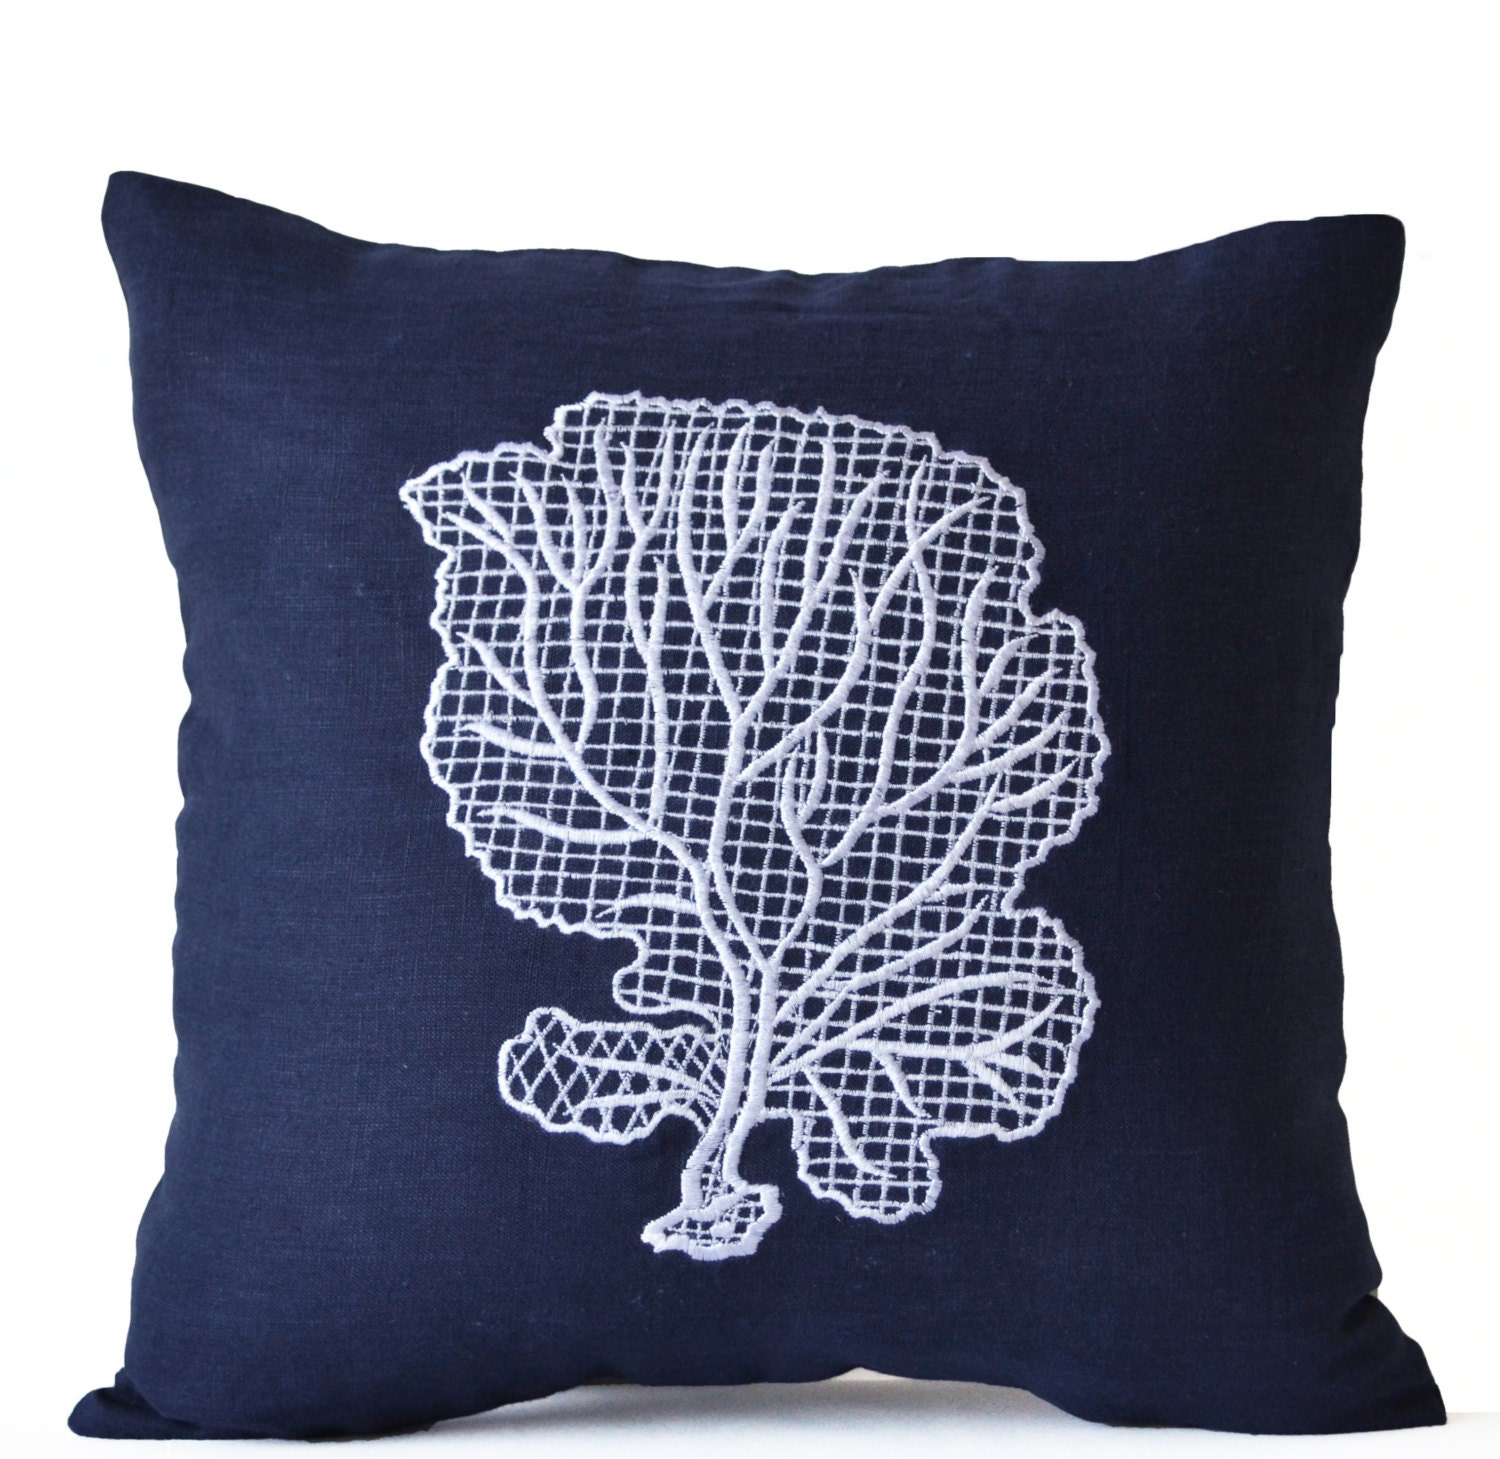 Navy Blue Throw Pillow Case Beach Decor Oceanic Pillow